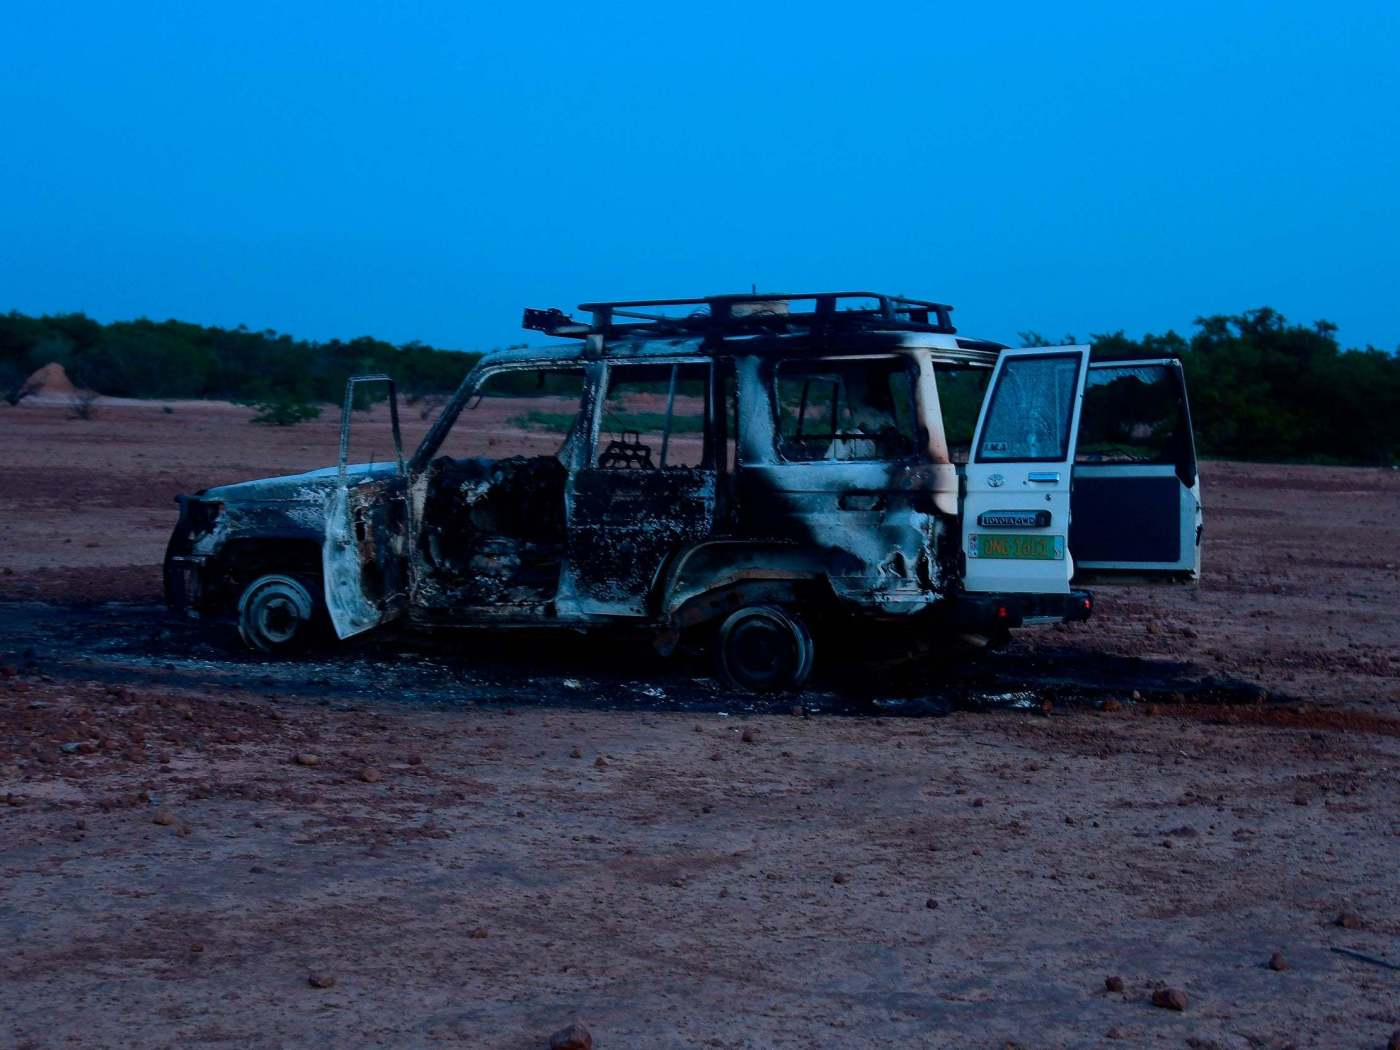 The wreckage of the car where six French aid workers, their local guide and the driver were killed by unidentified gunmen riding motorcycles in an area of southwestern Niger